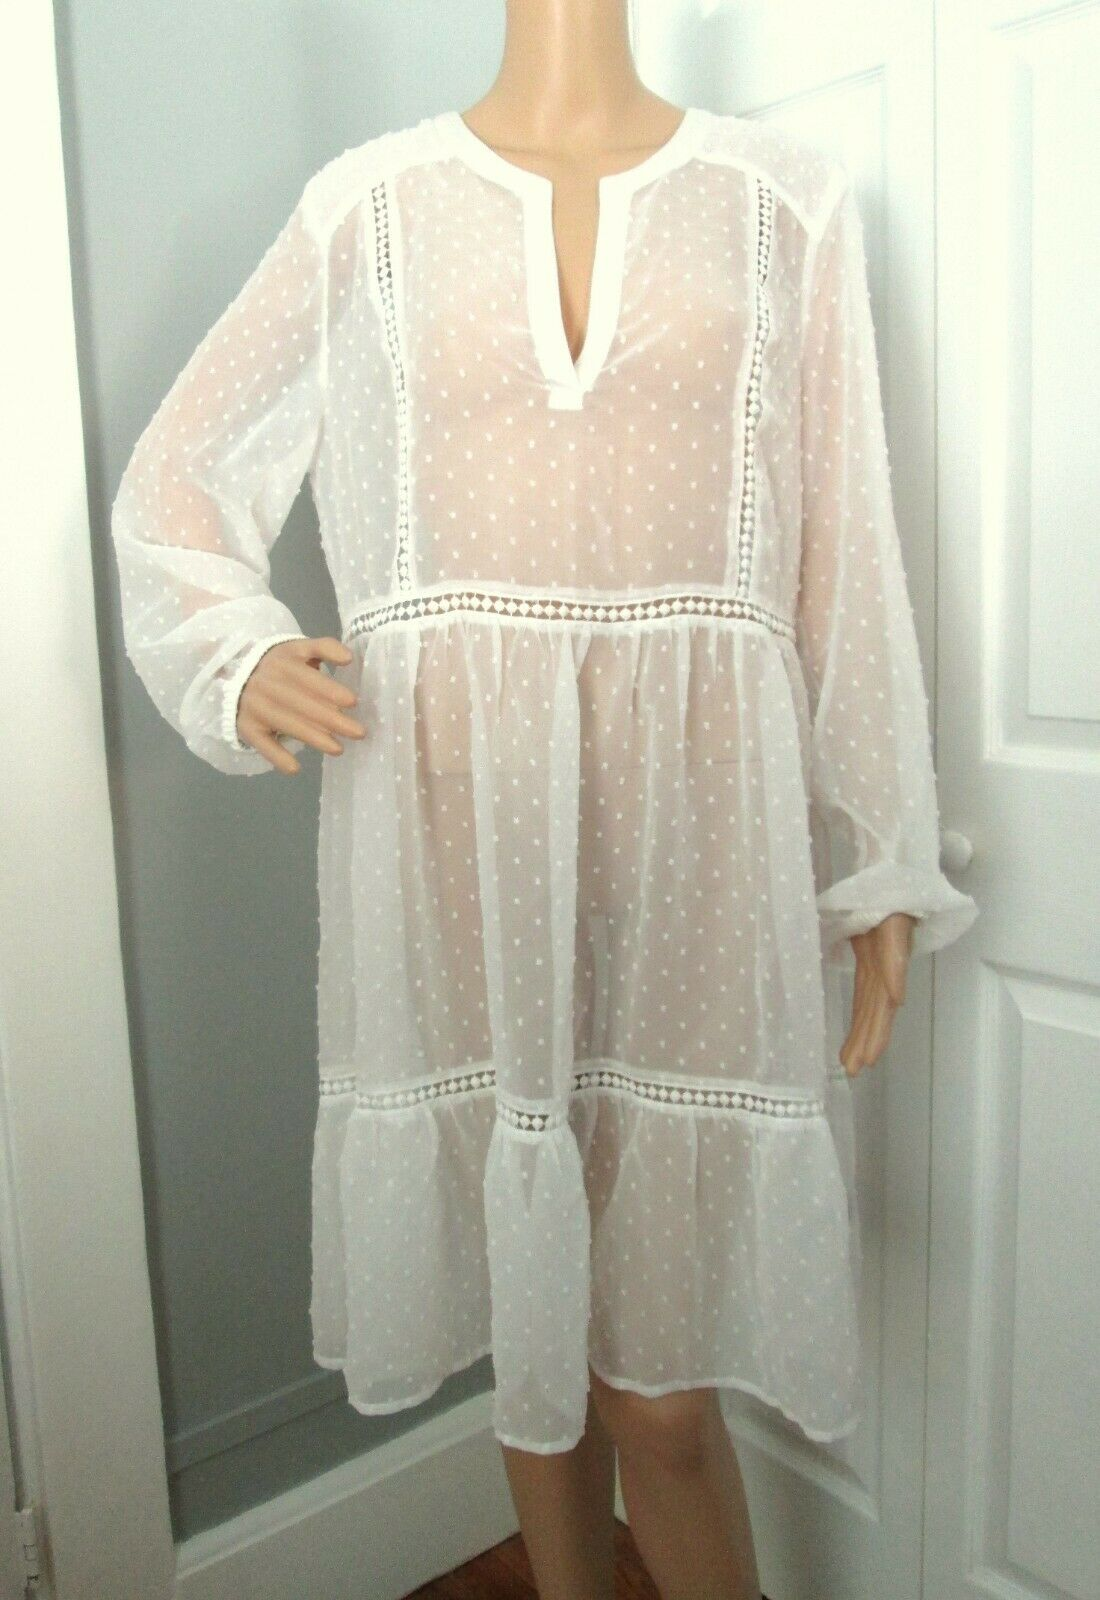 Context Seign & Taill Pur Weiß Nubby Tricot Points Empire Robe XL - Neuf